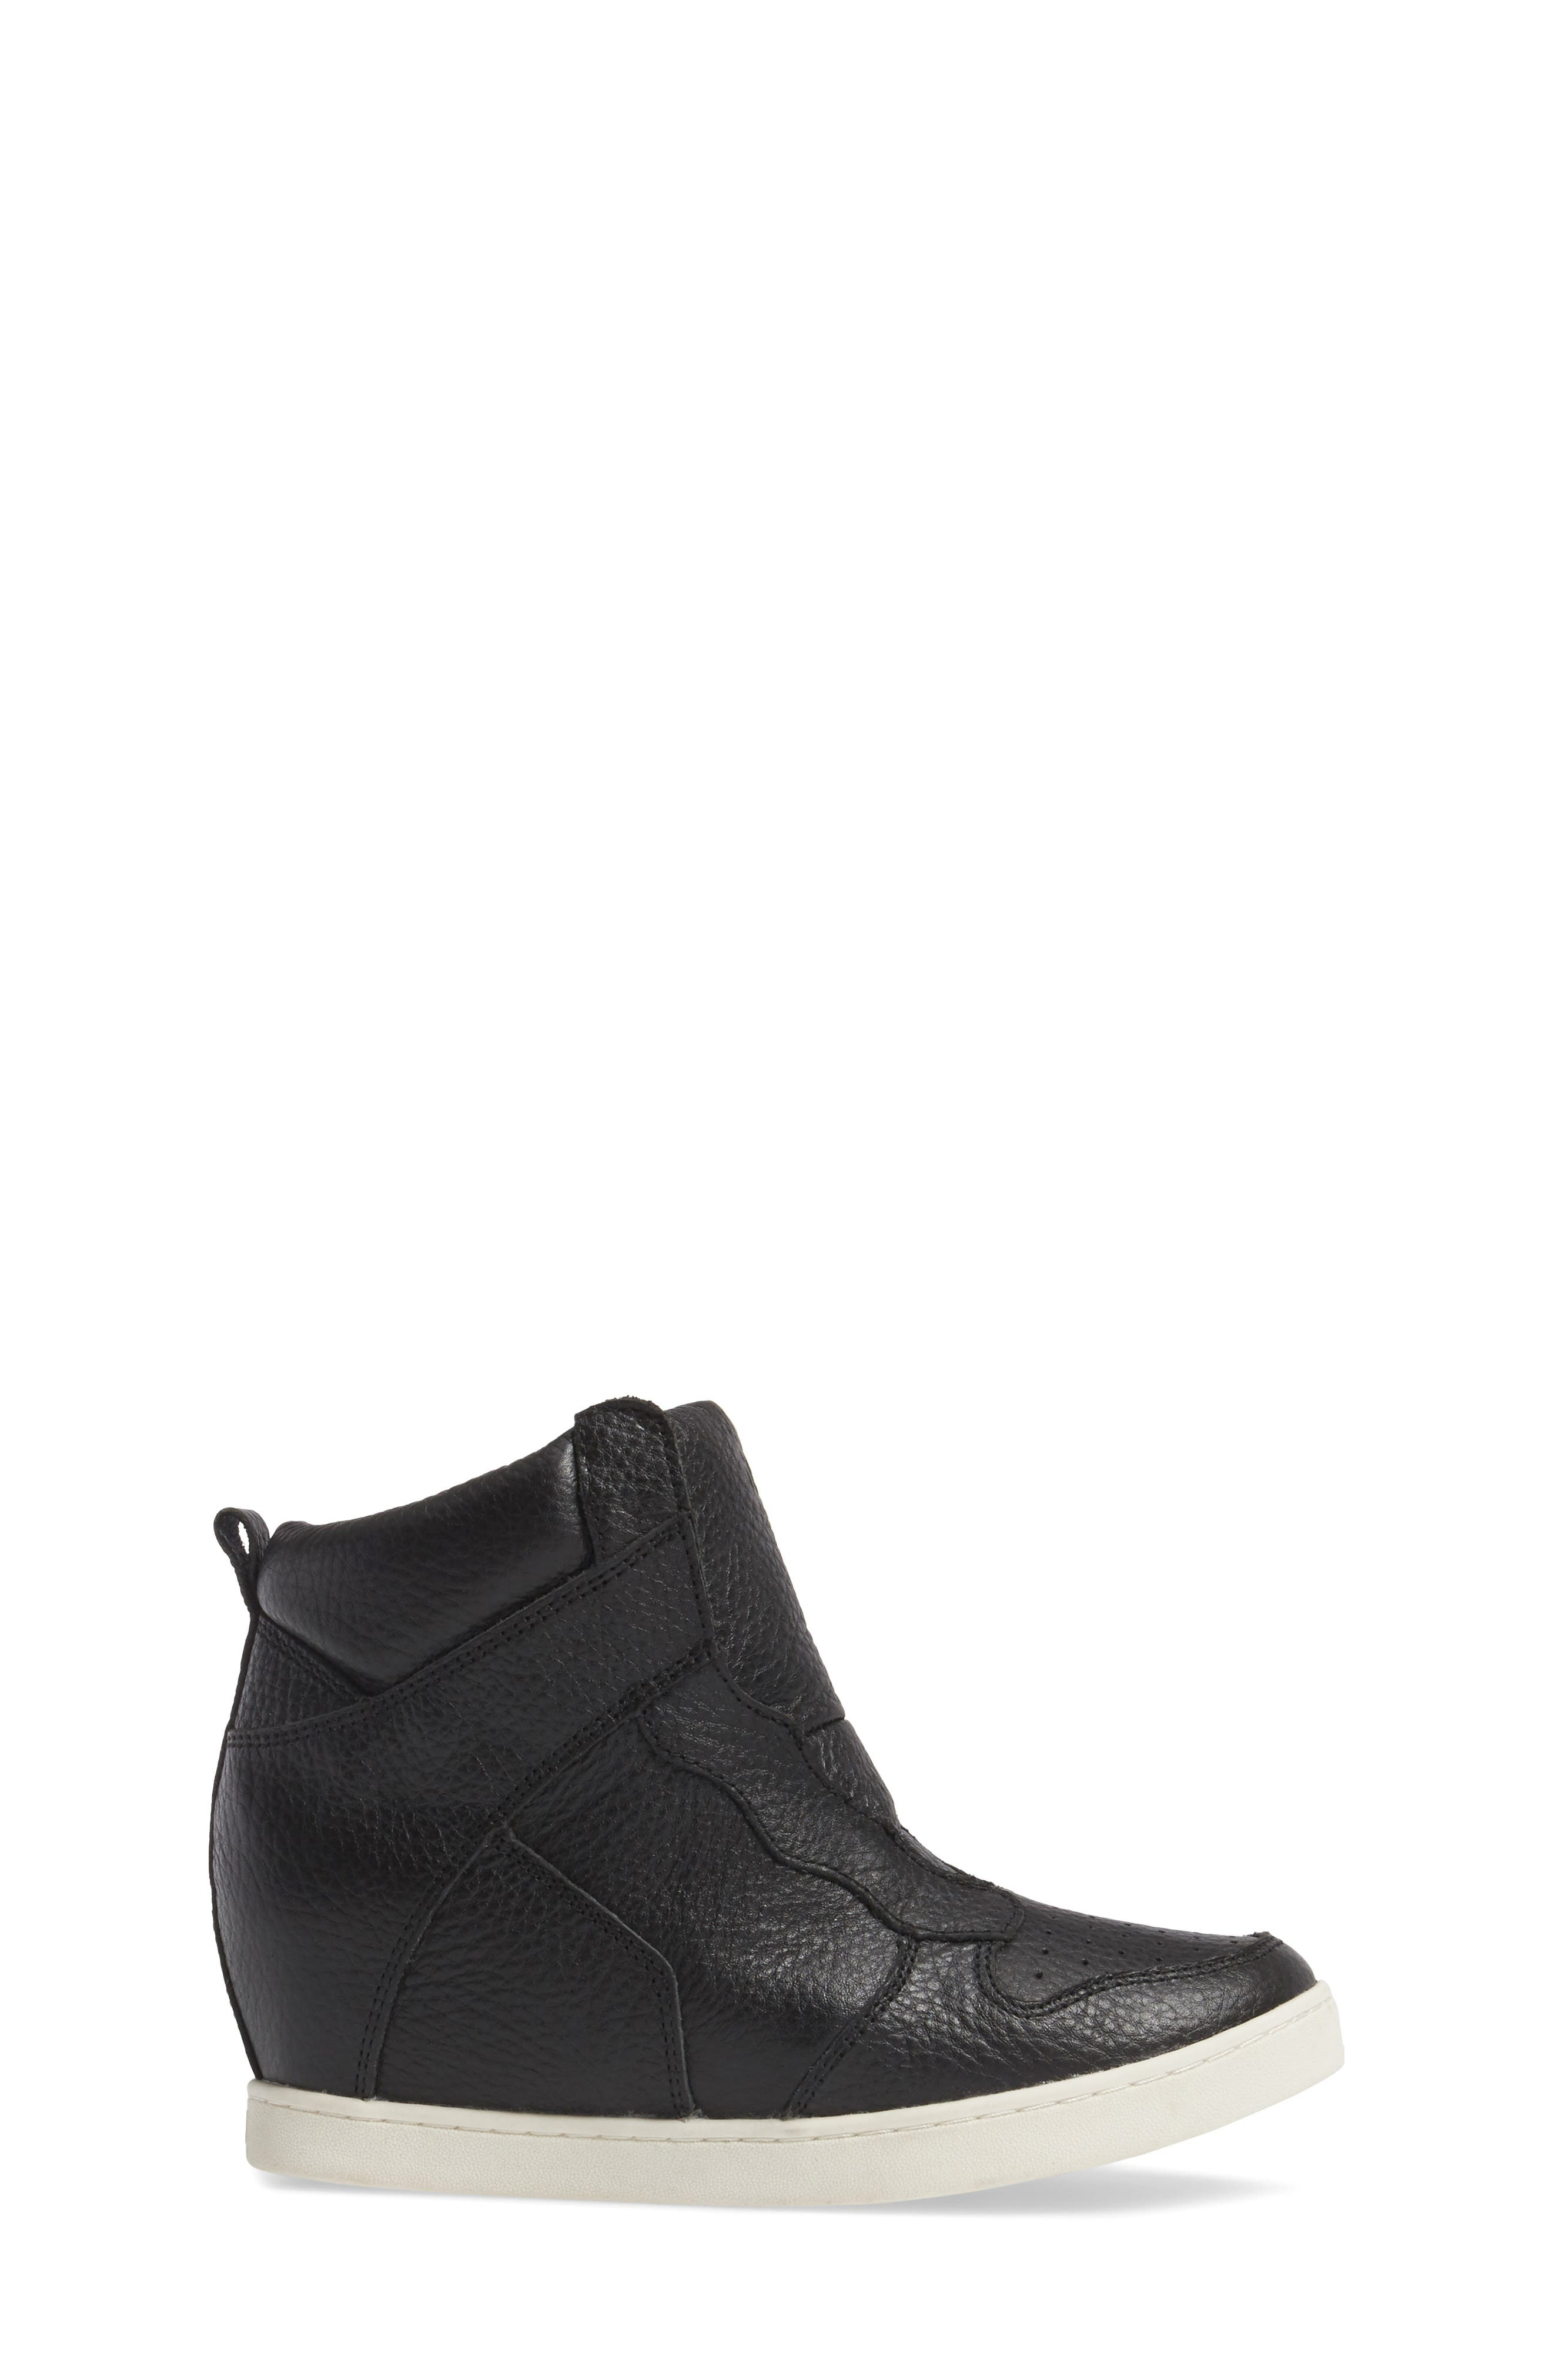 Alternate Image 3  - Ash Syndey Laceless Concealed Wedge Bootie (Toddler, Little Kid & Big Kid)